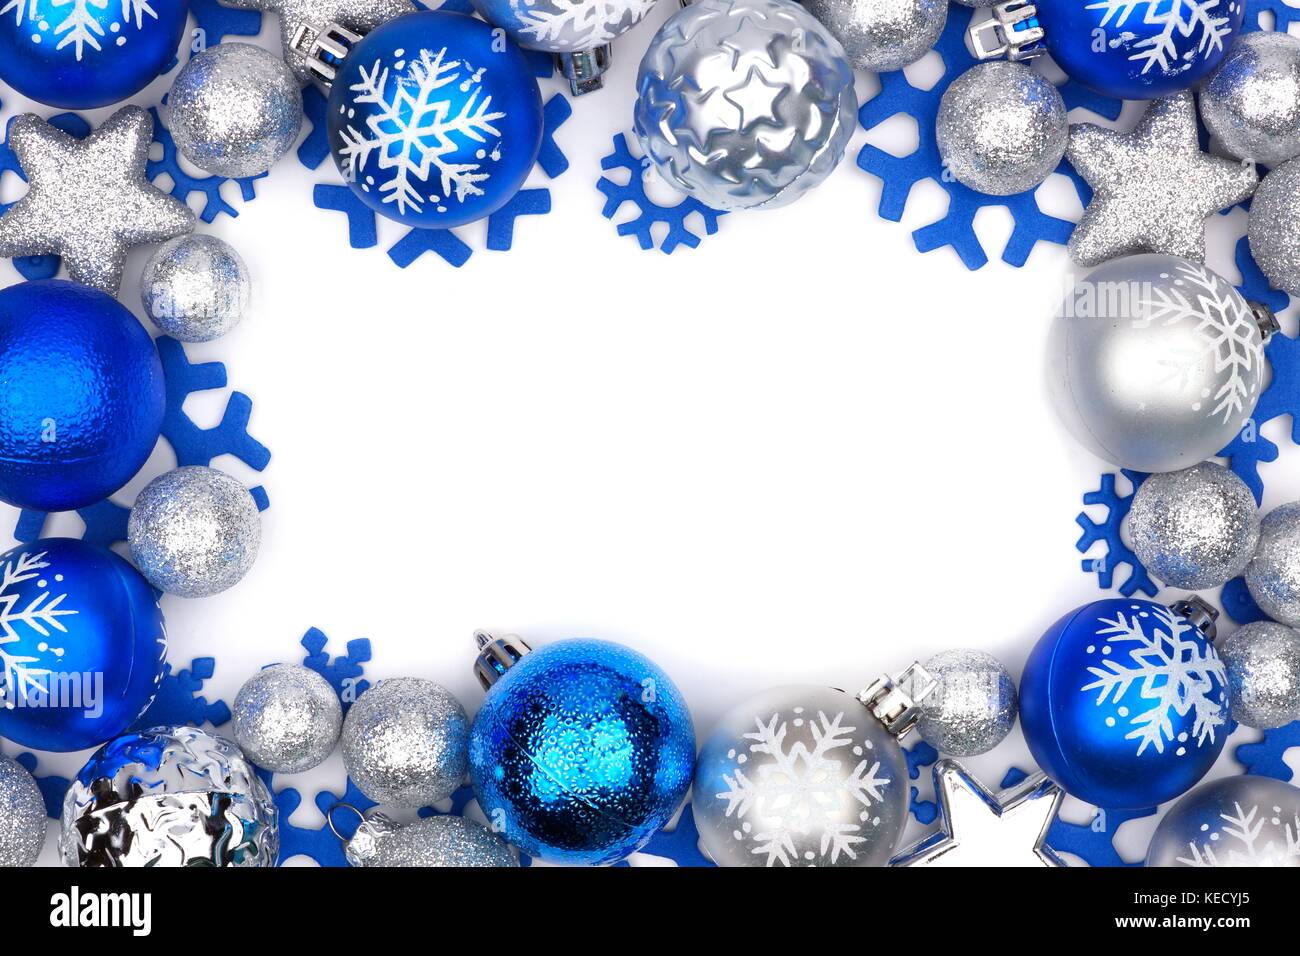 Silver Ornaments Stock Photos Amp Silver Ornaments Stock